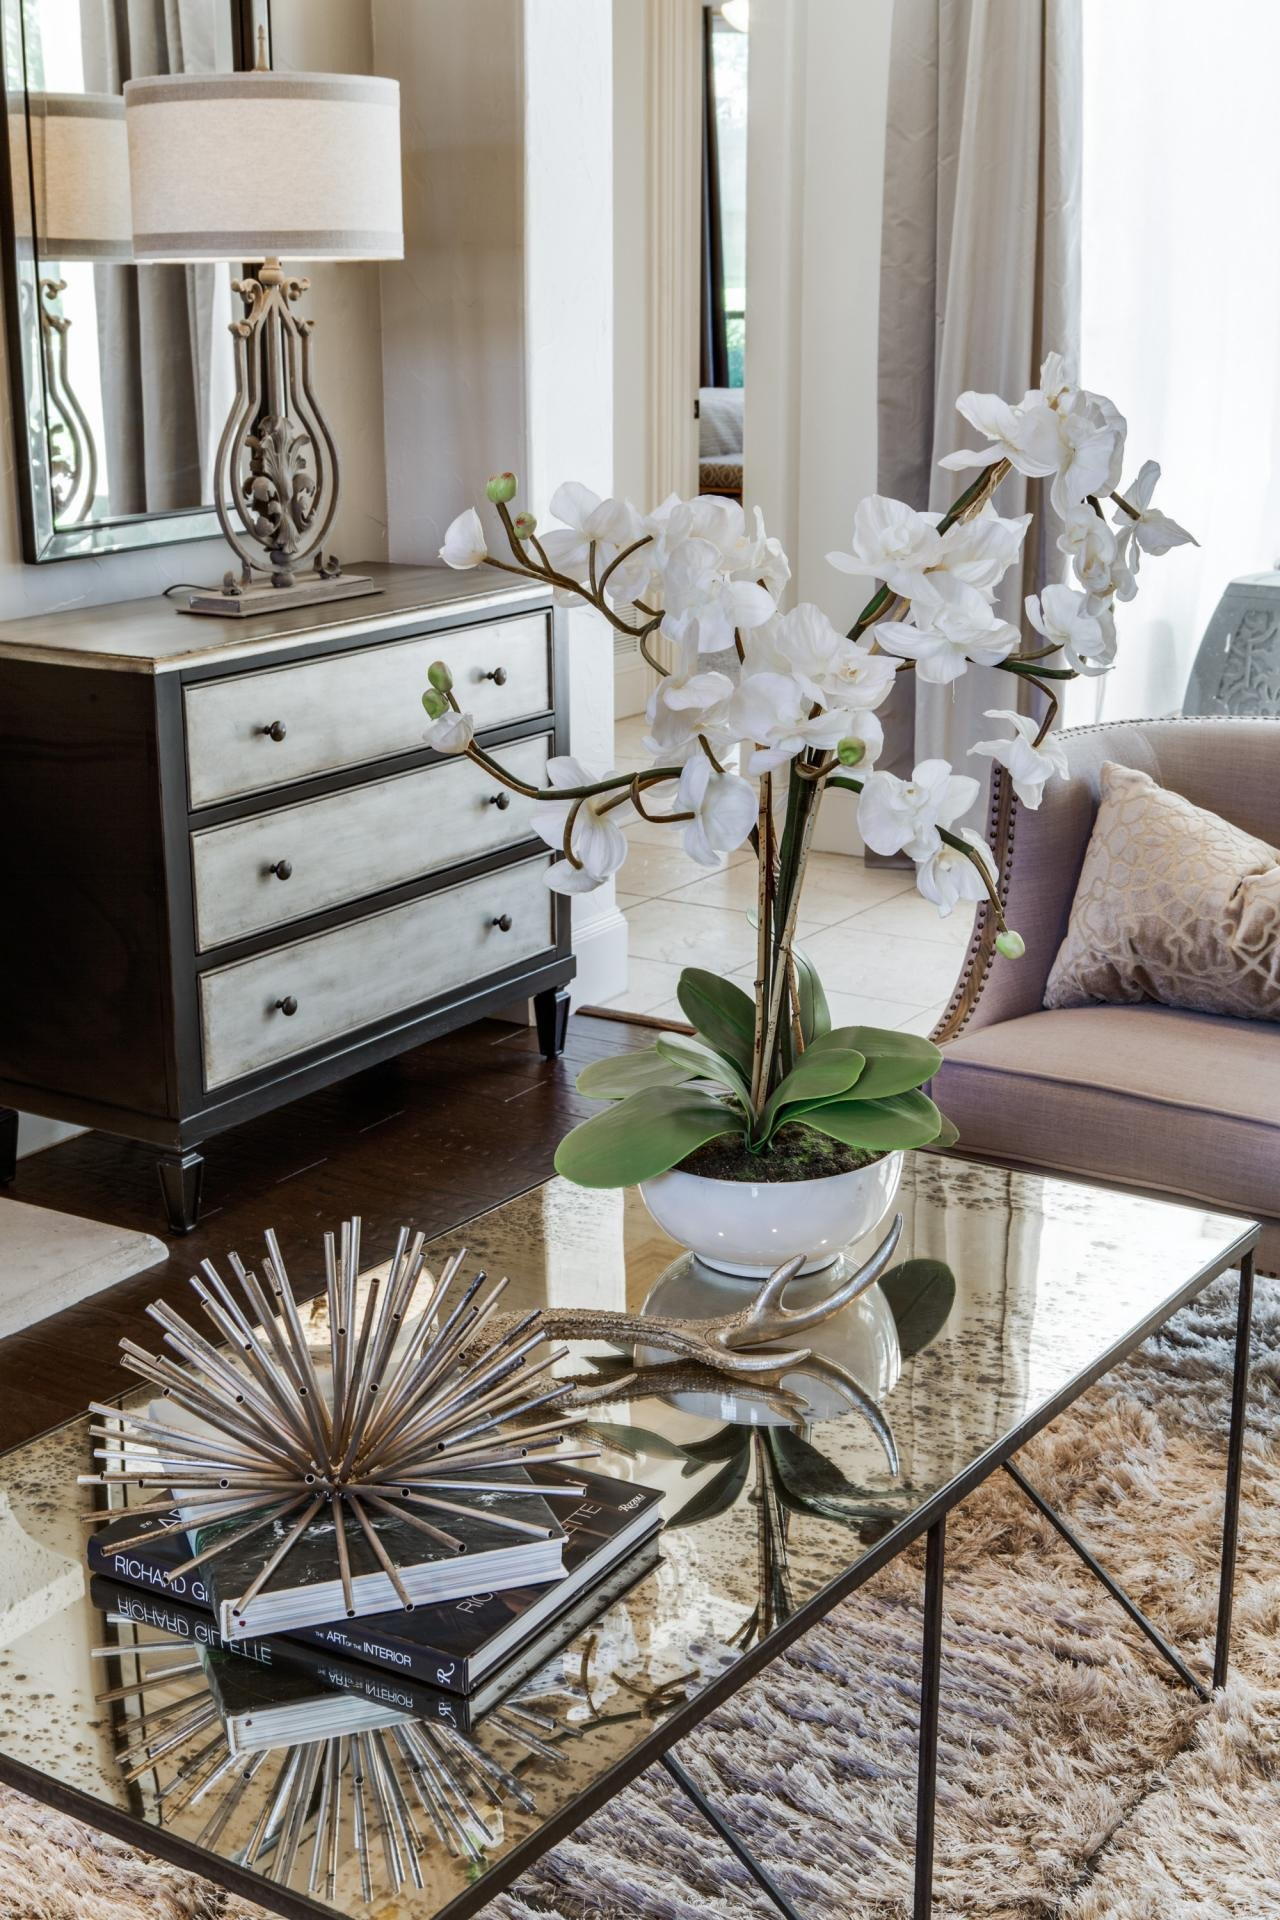 Decor for Living Room Tables S